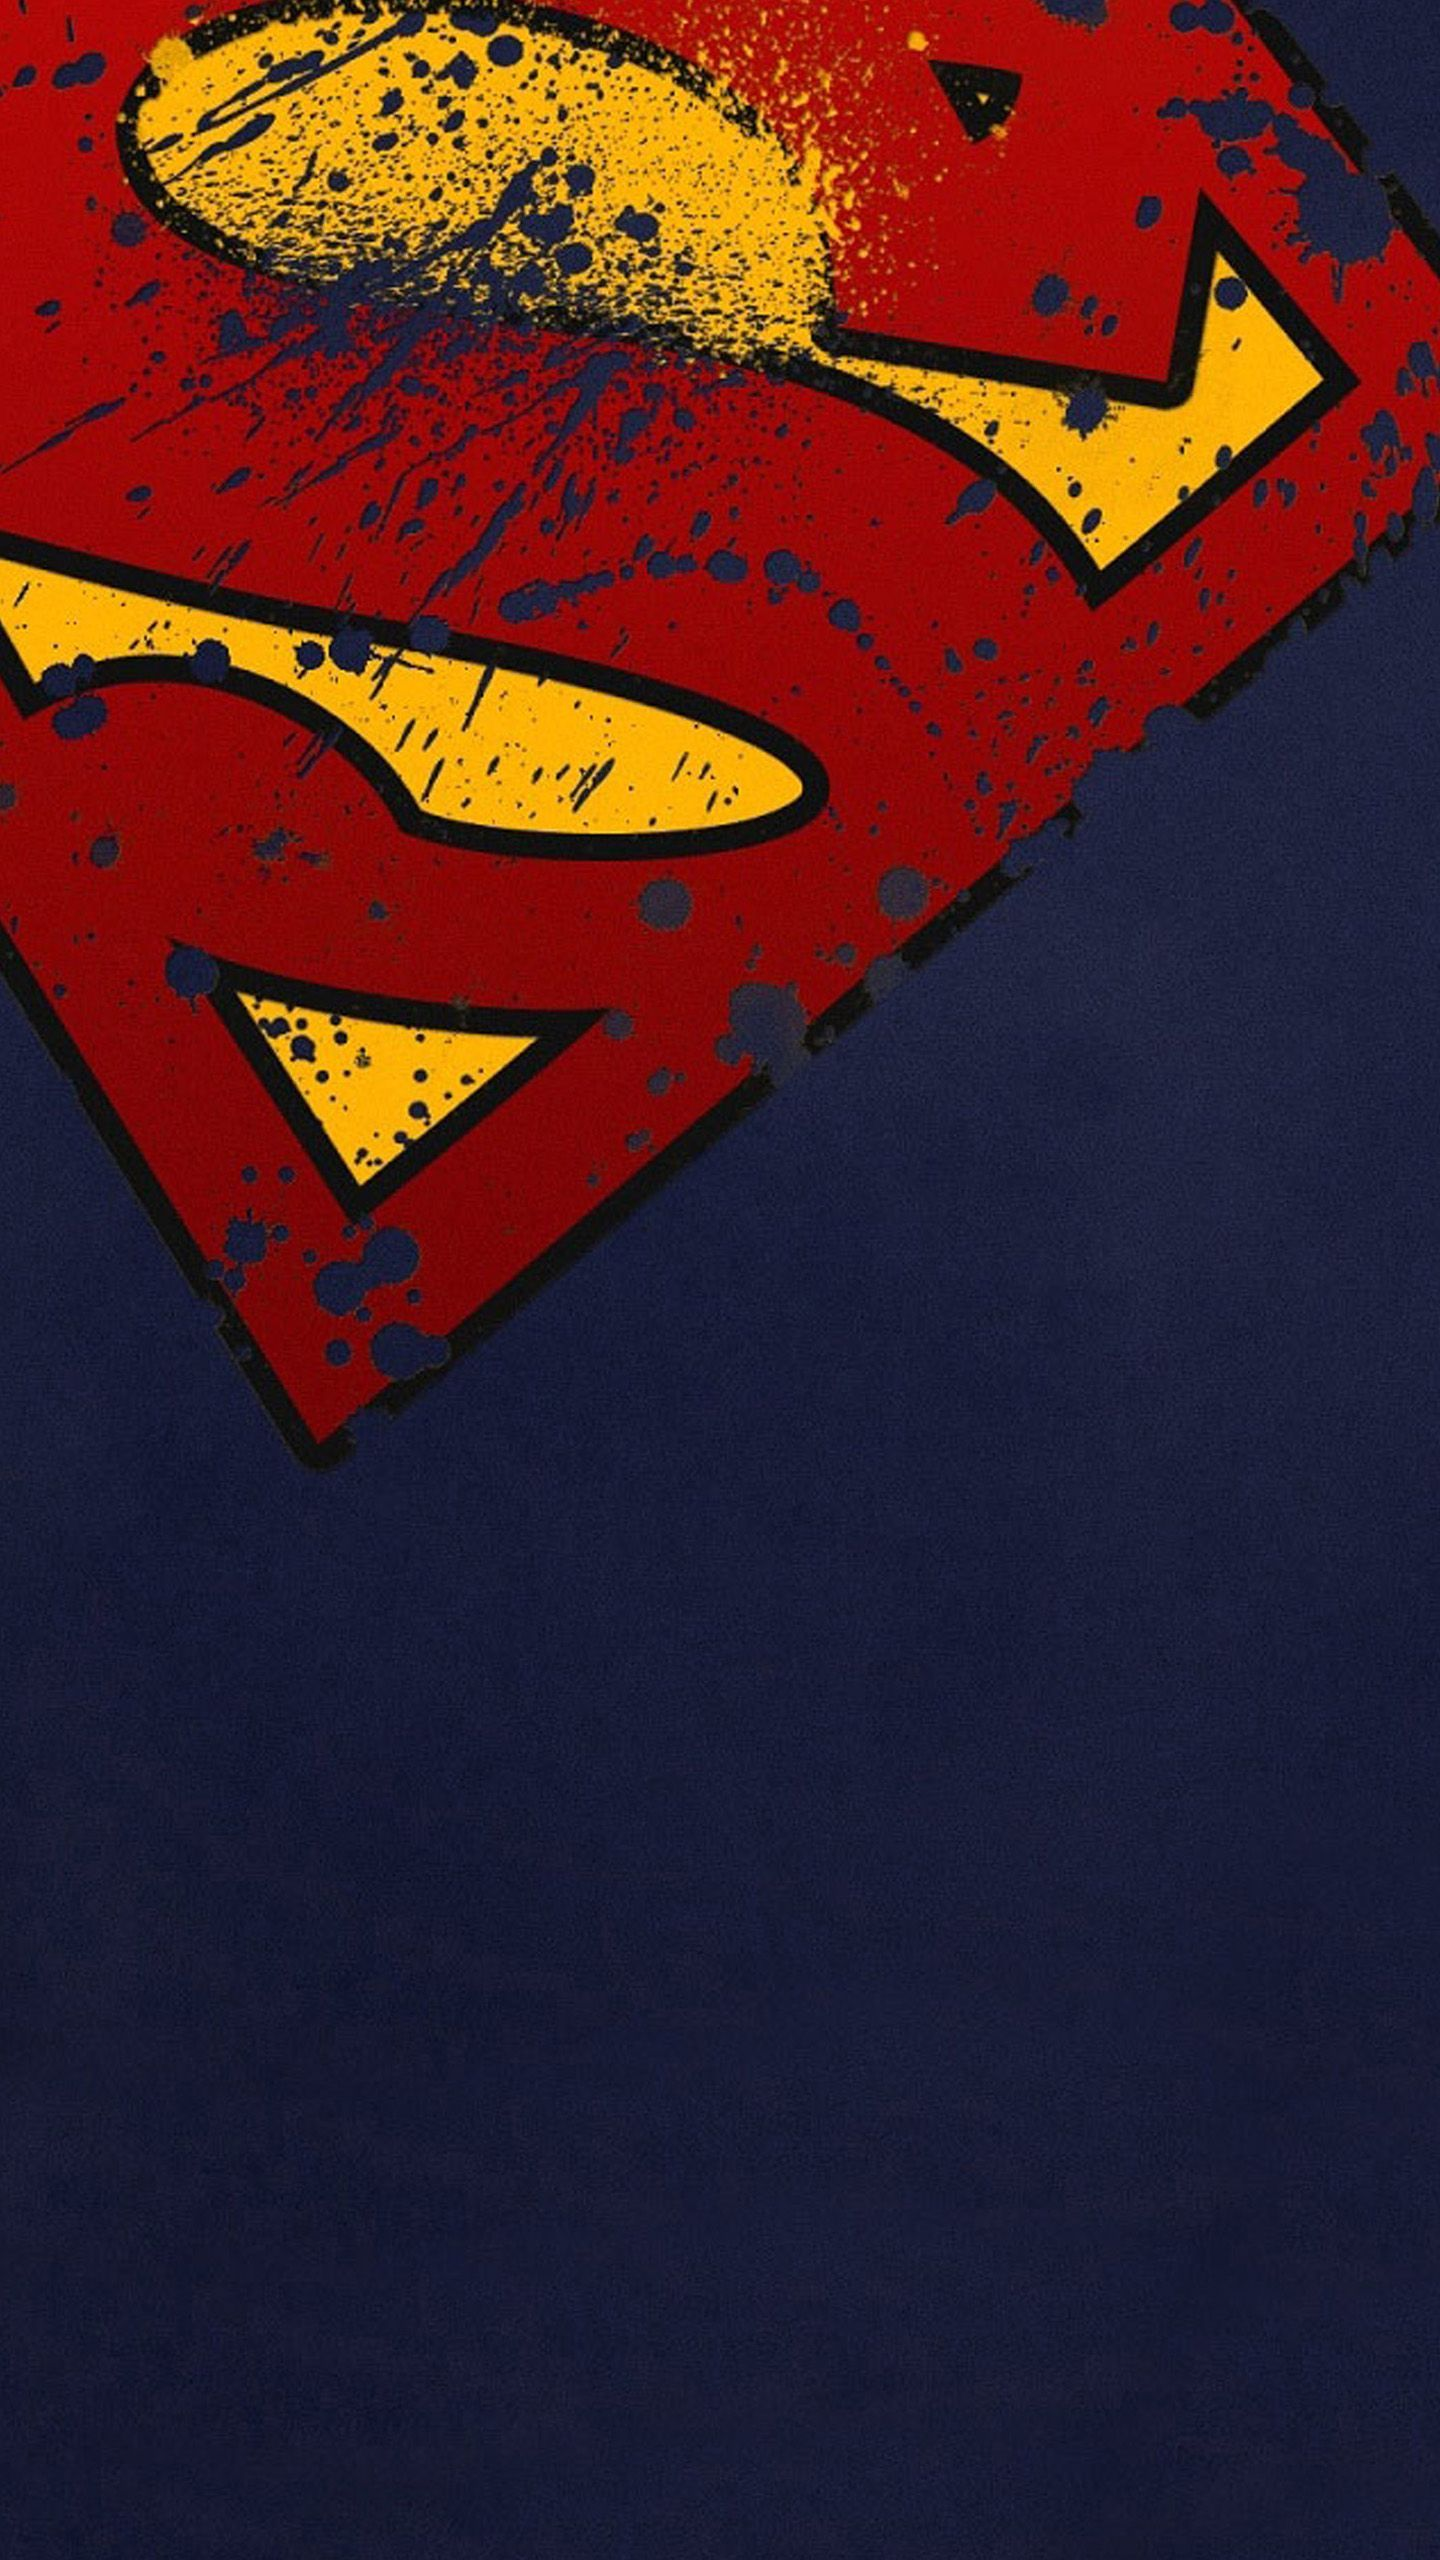 Superman Phone Wallpapers - Top Free